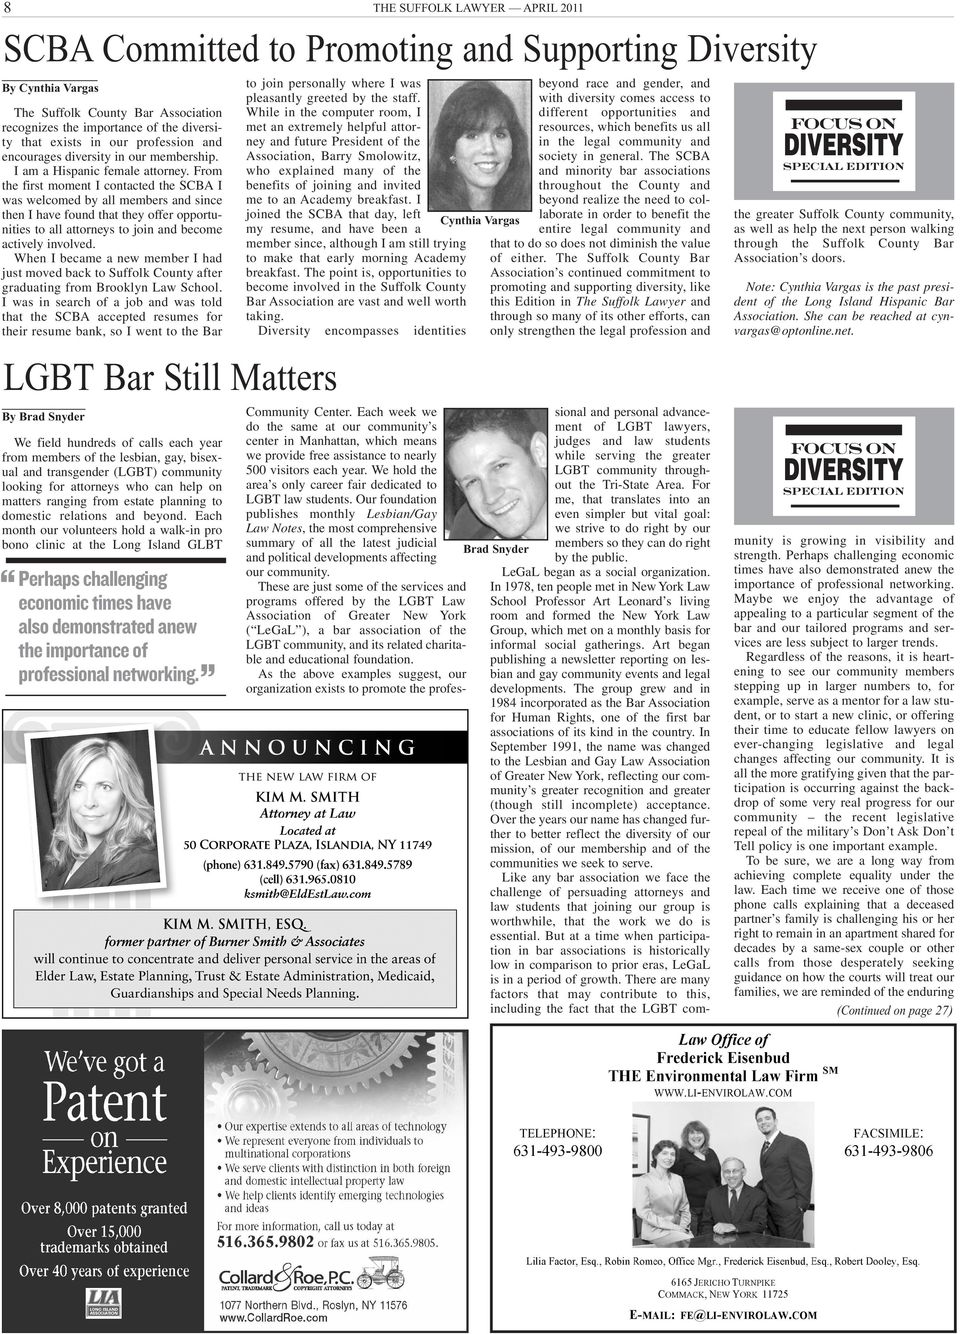 Each month our volunteers hold a walk-in pro bono clinic at the Long Island GLBT THE SUFFOLK LAWYER APRIL 2011 SCBA Committed to Promoting and Supporting Diversity By Cynthia Vargas The Suffolk